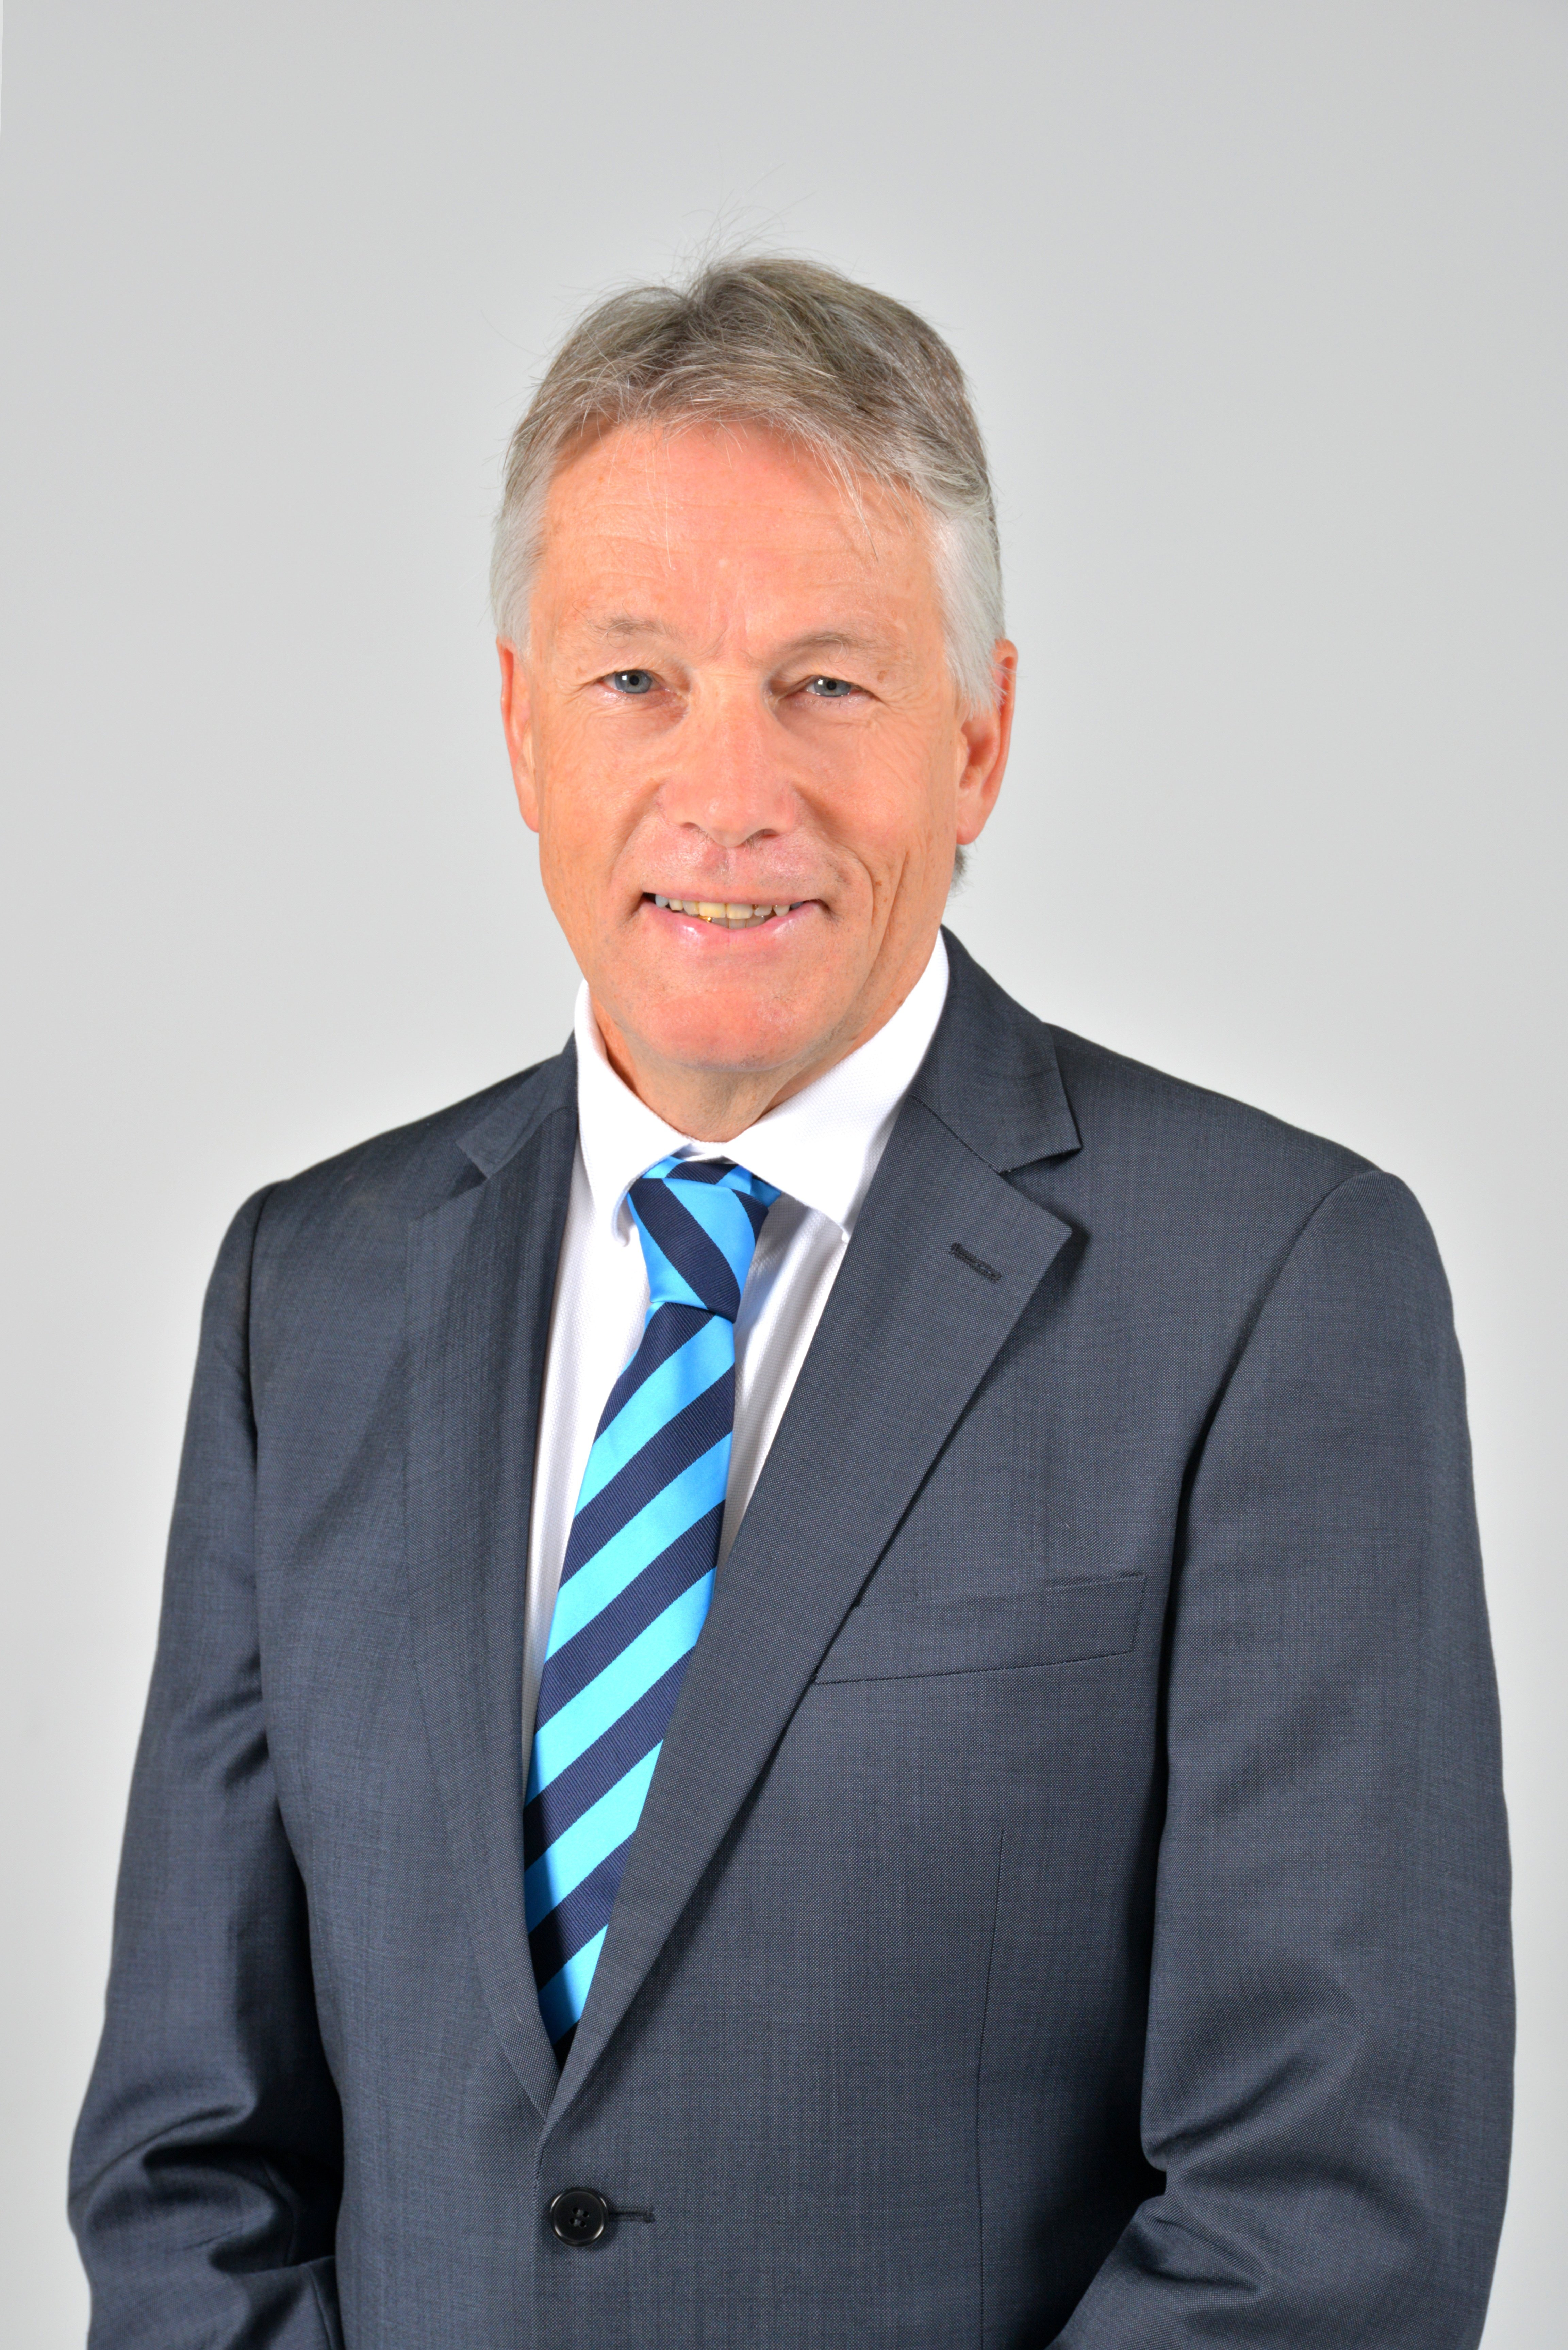 Experience key to new Harcourts role